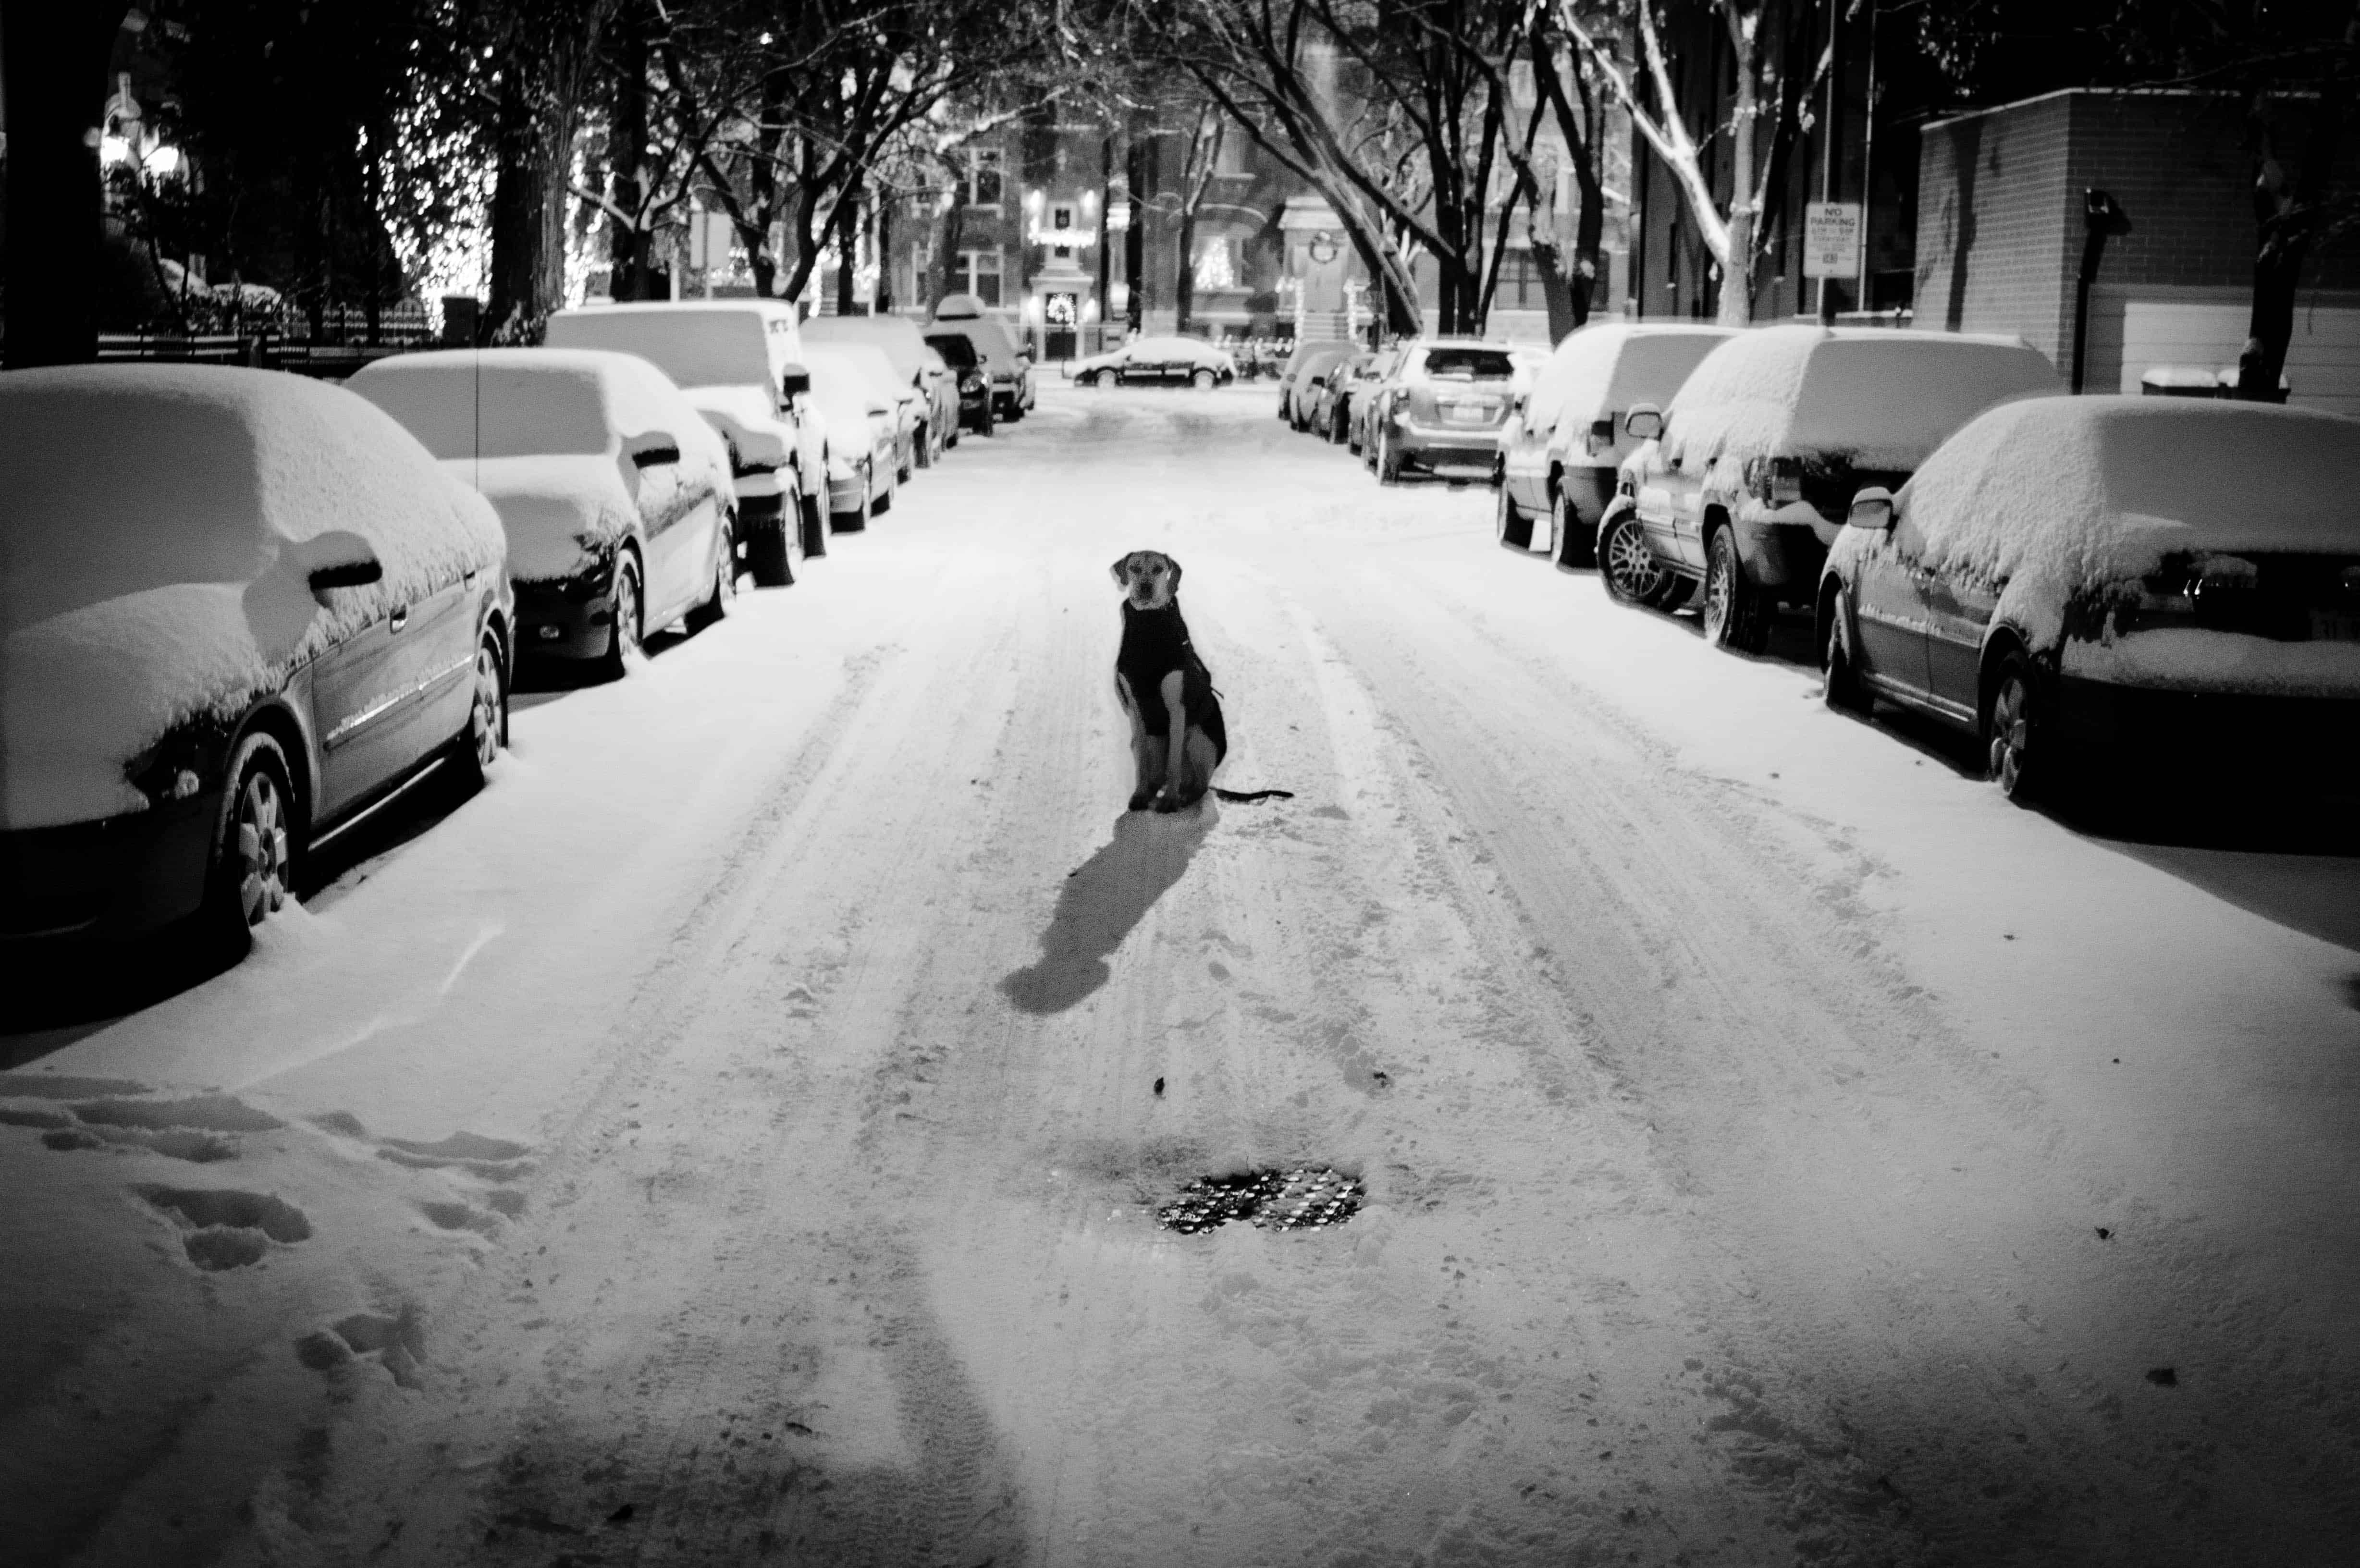 Rhodesian Ridgeback, dog blog, adventure, chicago, snow, petcentric, marking our territory